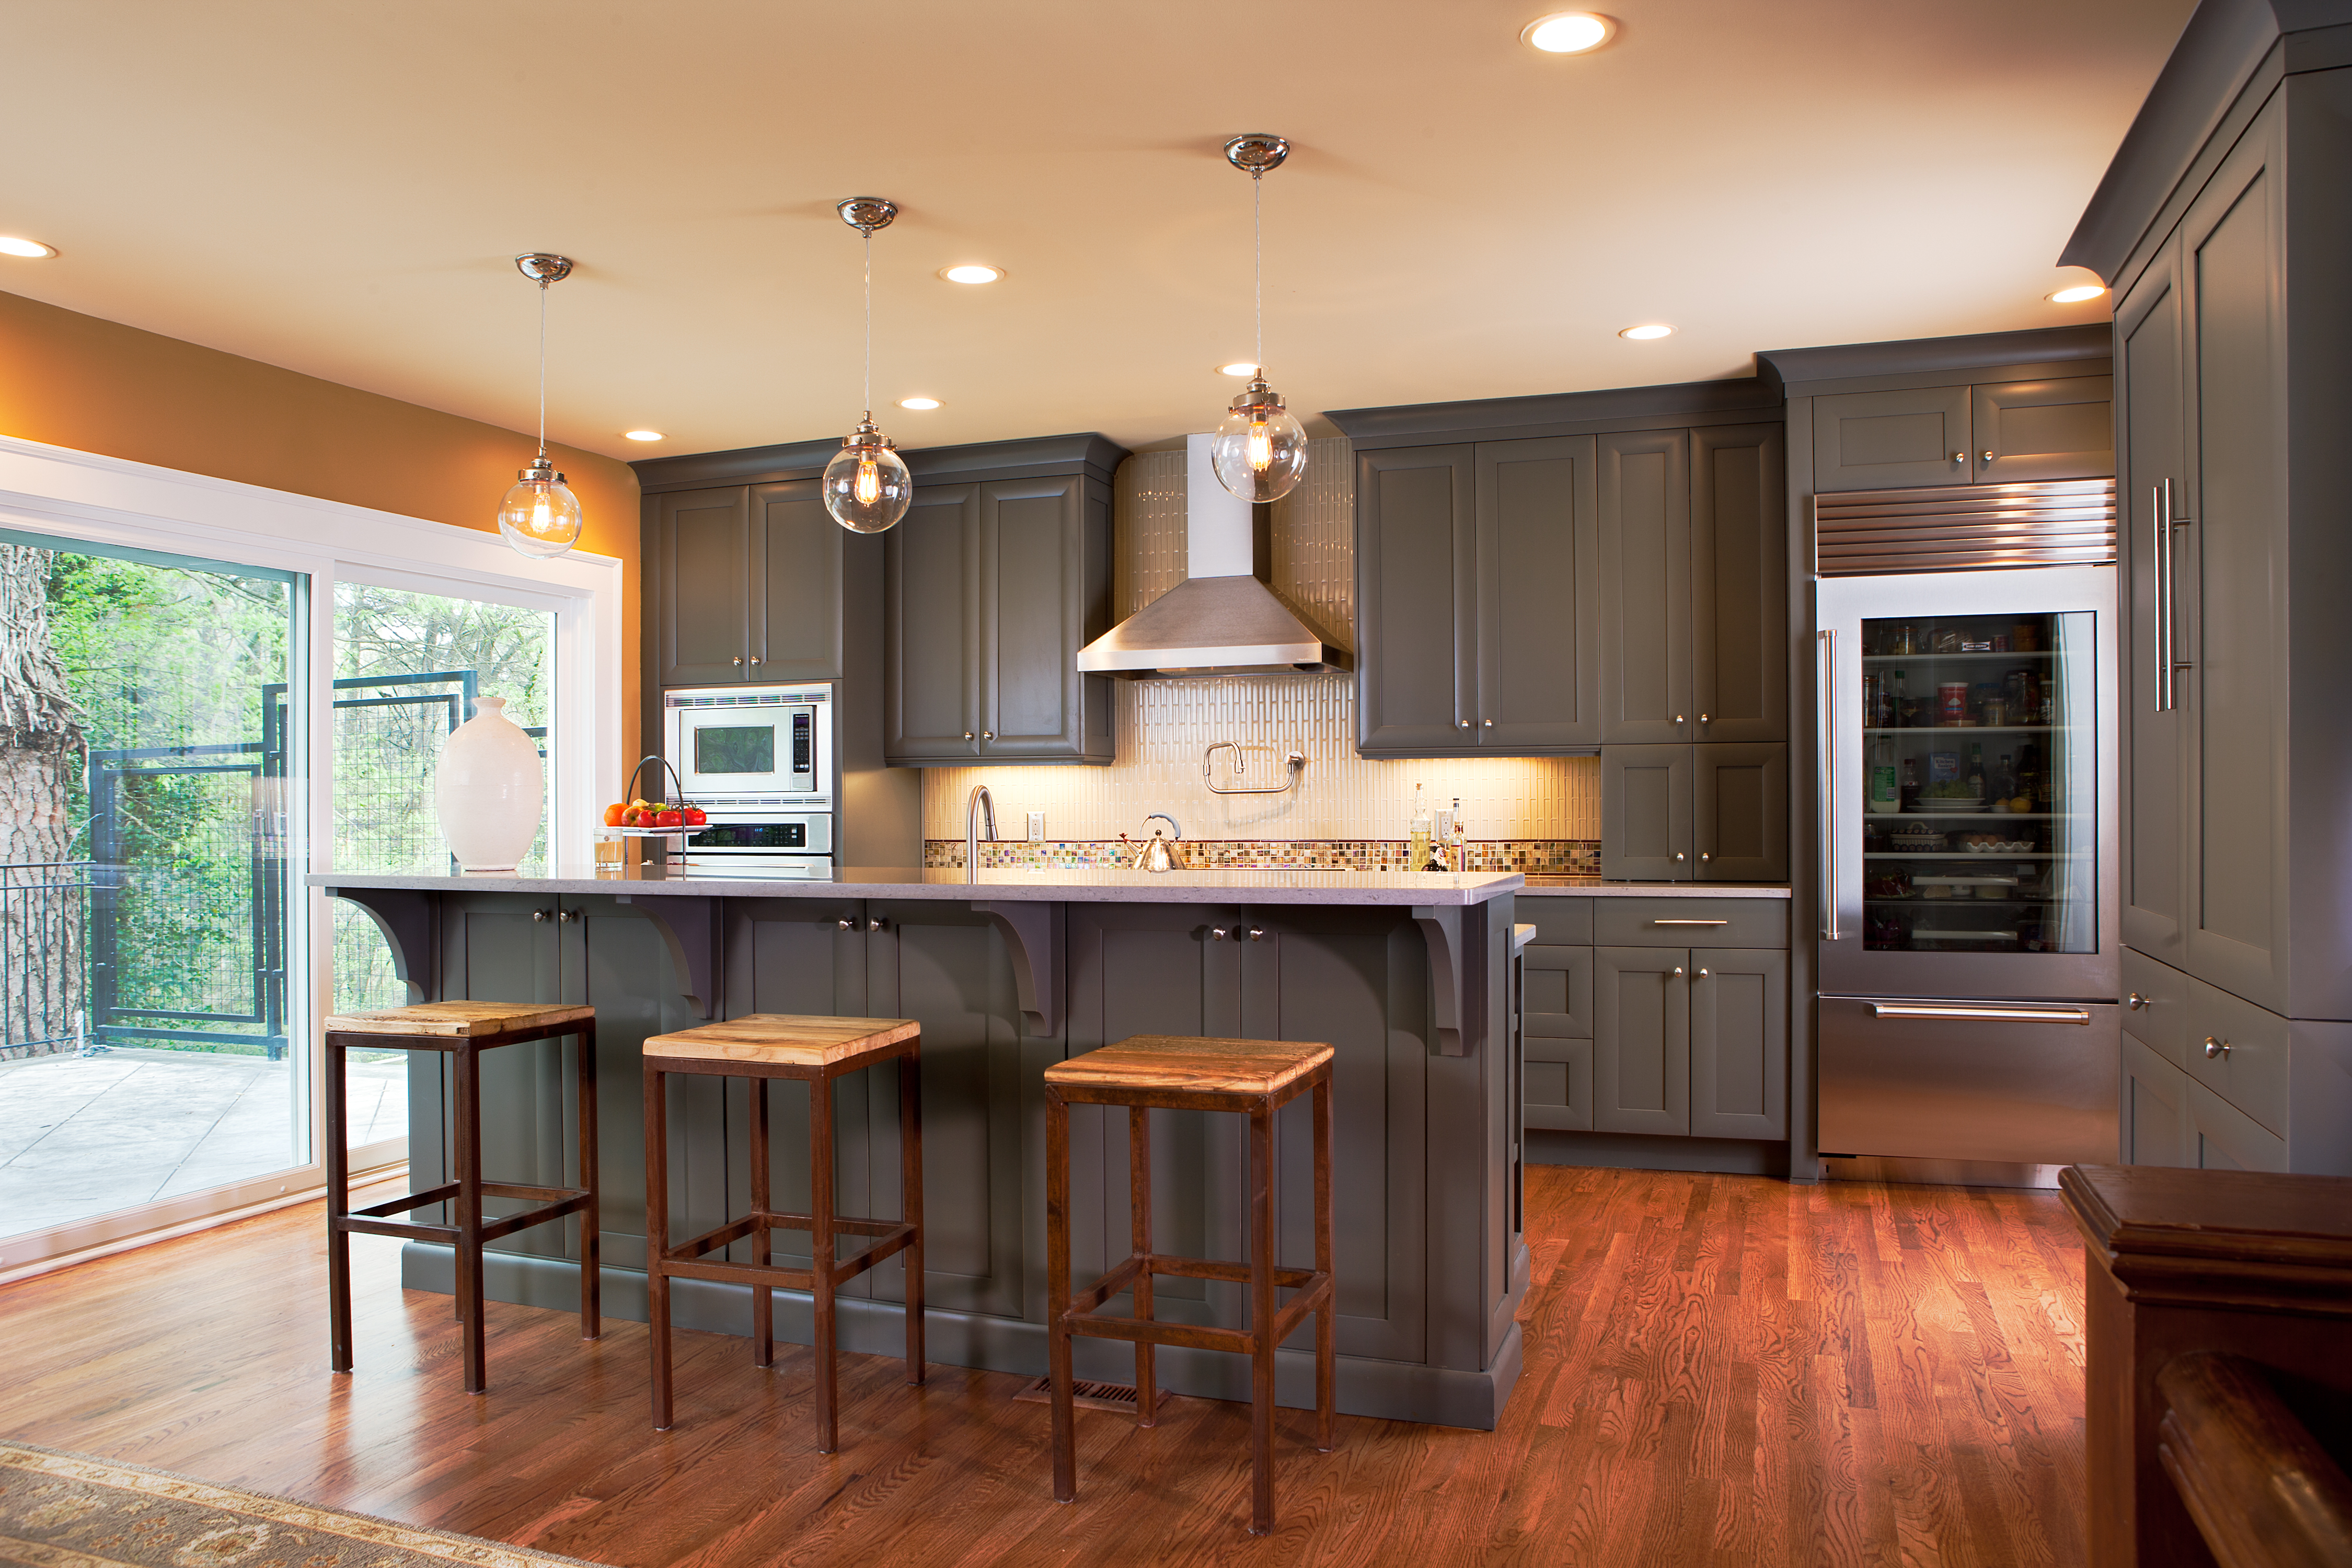 20 Gray Kitchen Cabinets Ideas (Clean and Modern Design)